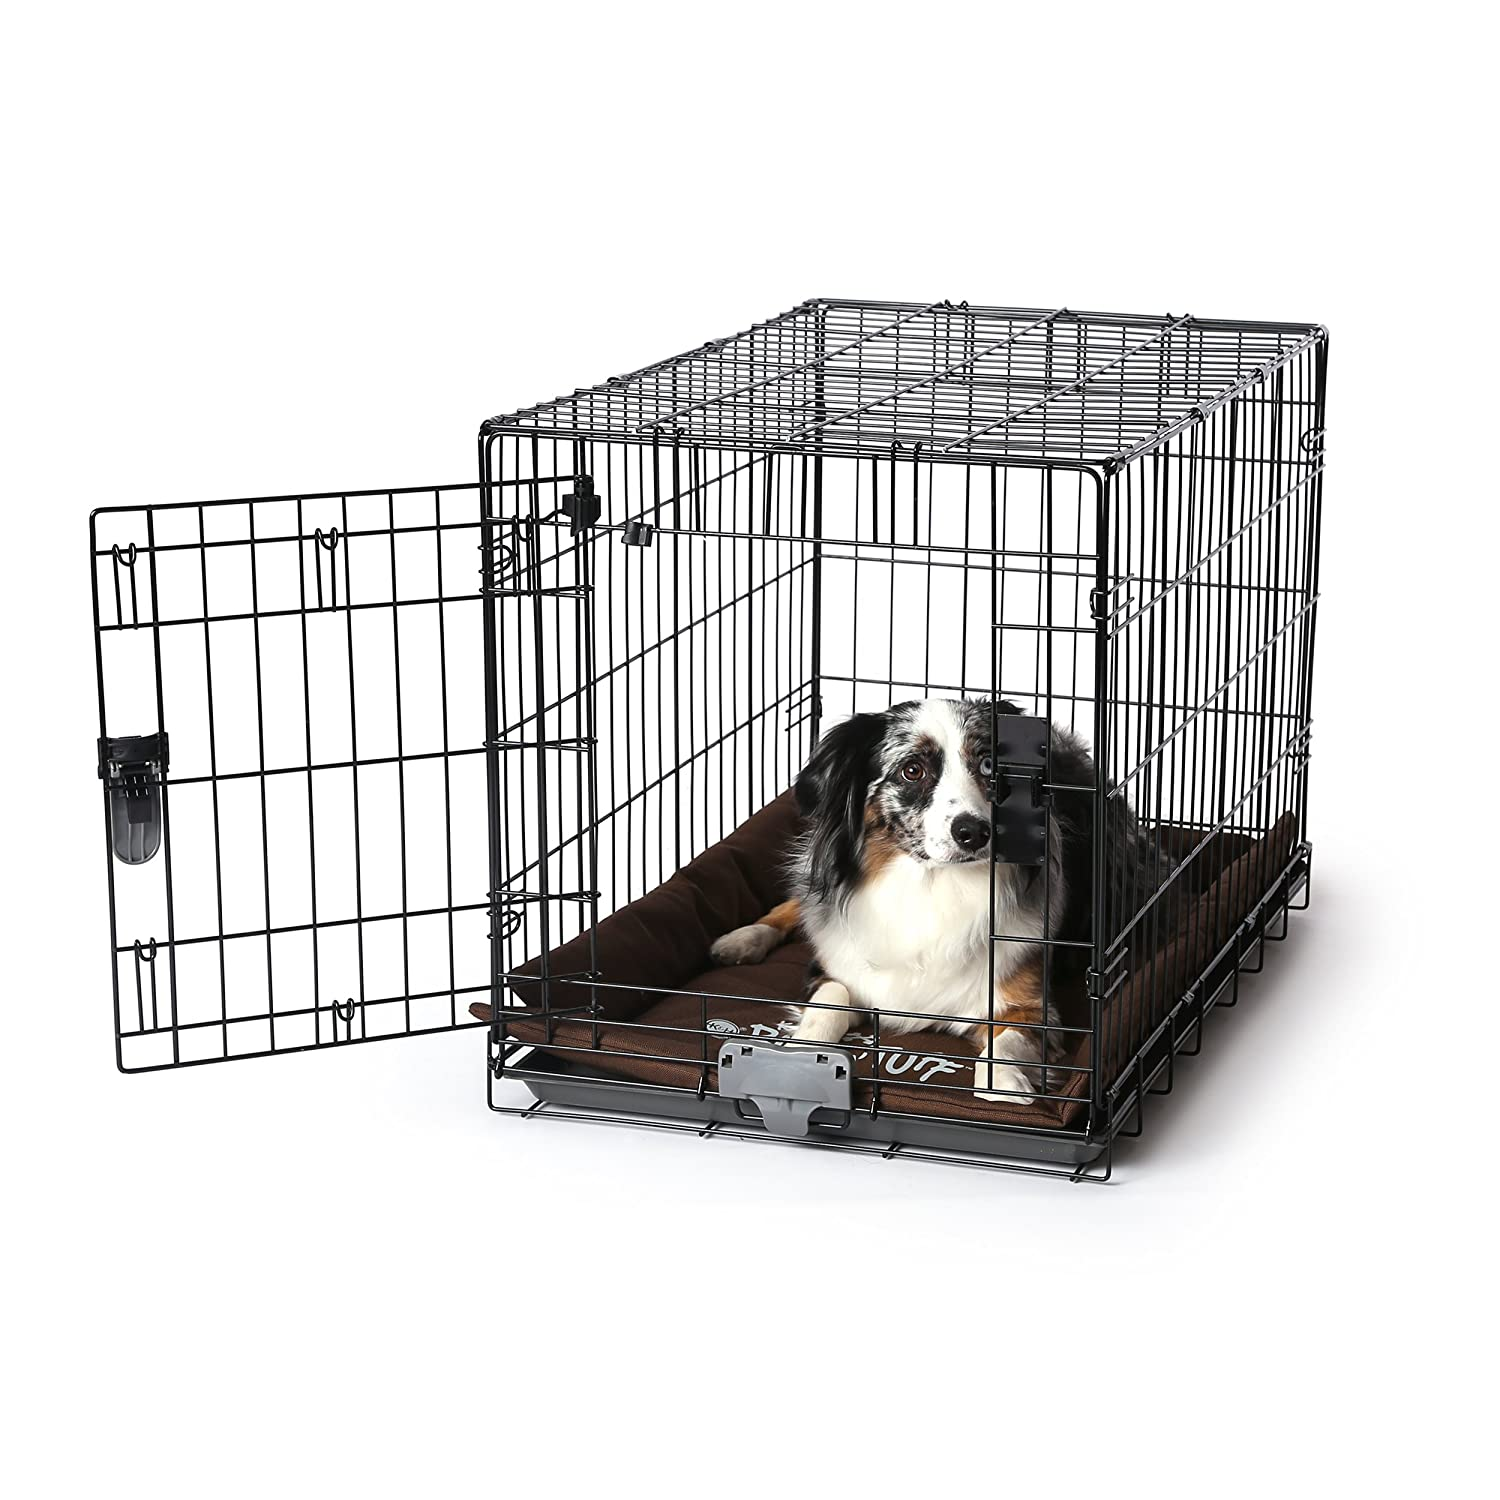 K&H Pet Products K-9 Ruff n' Tuff Crate Pad Medium Chocolate (21  x 31 ) 1260 Denier Rip-Stop Polyester for Pets That Need Extra Tough Fabric